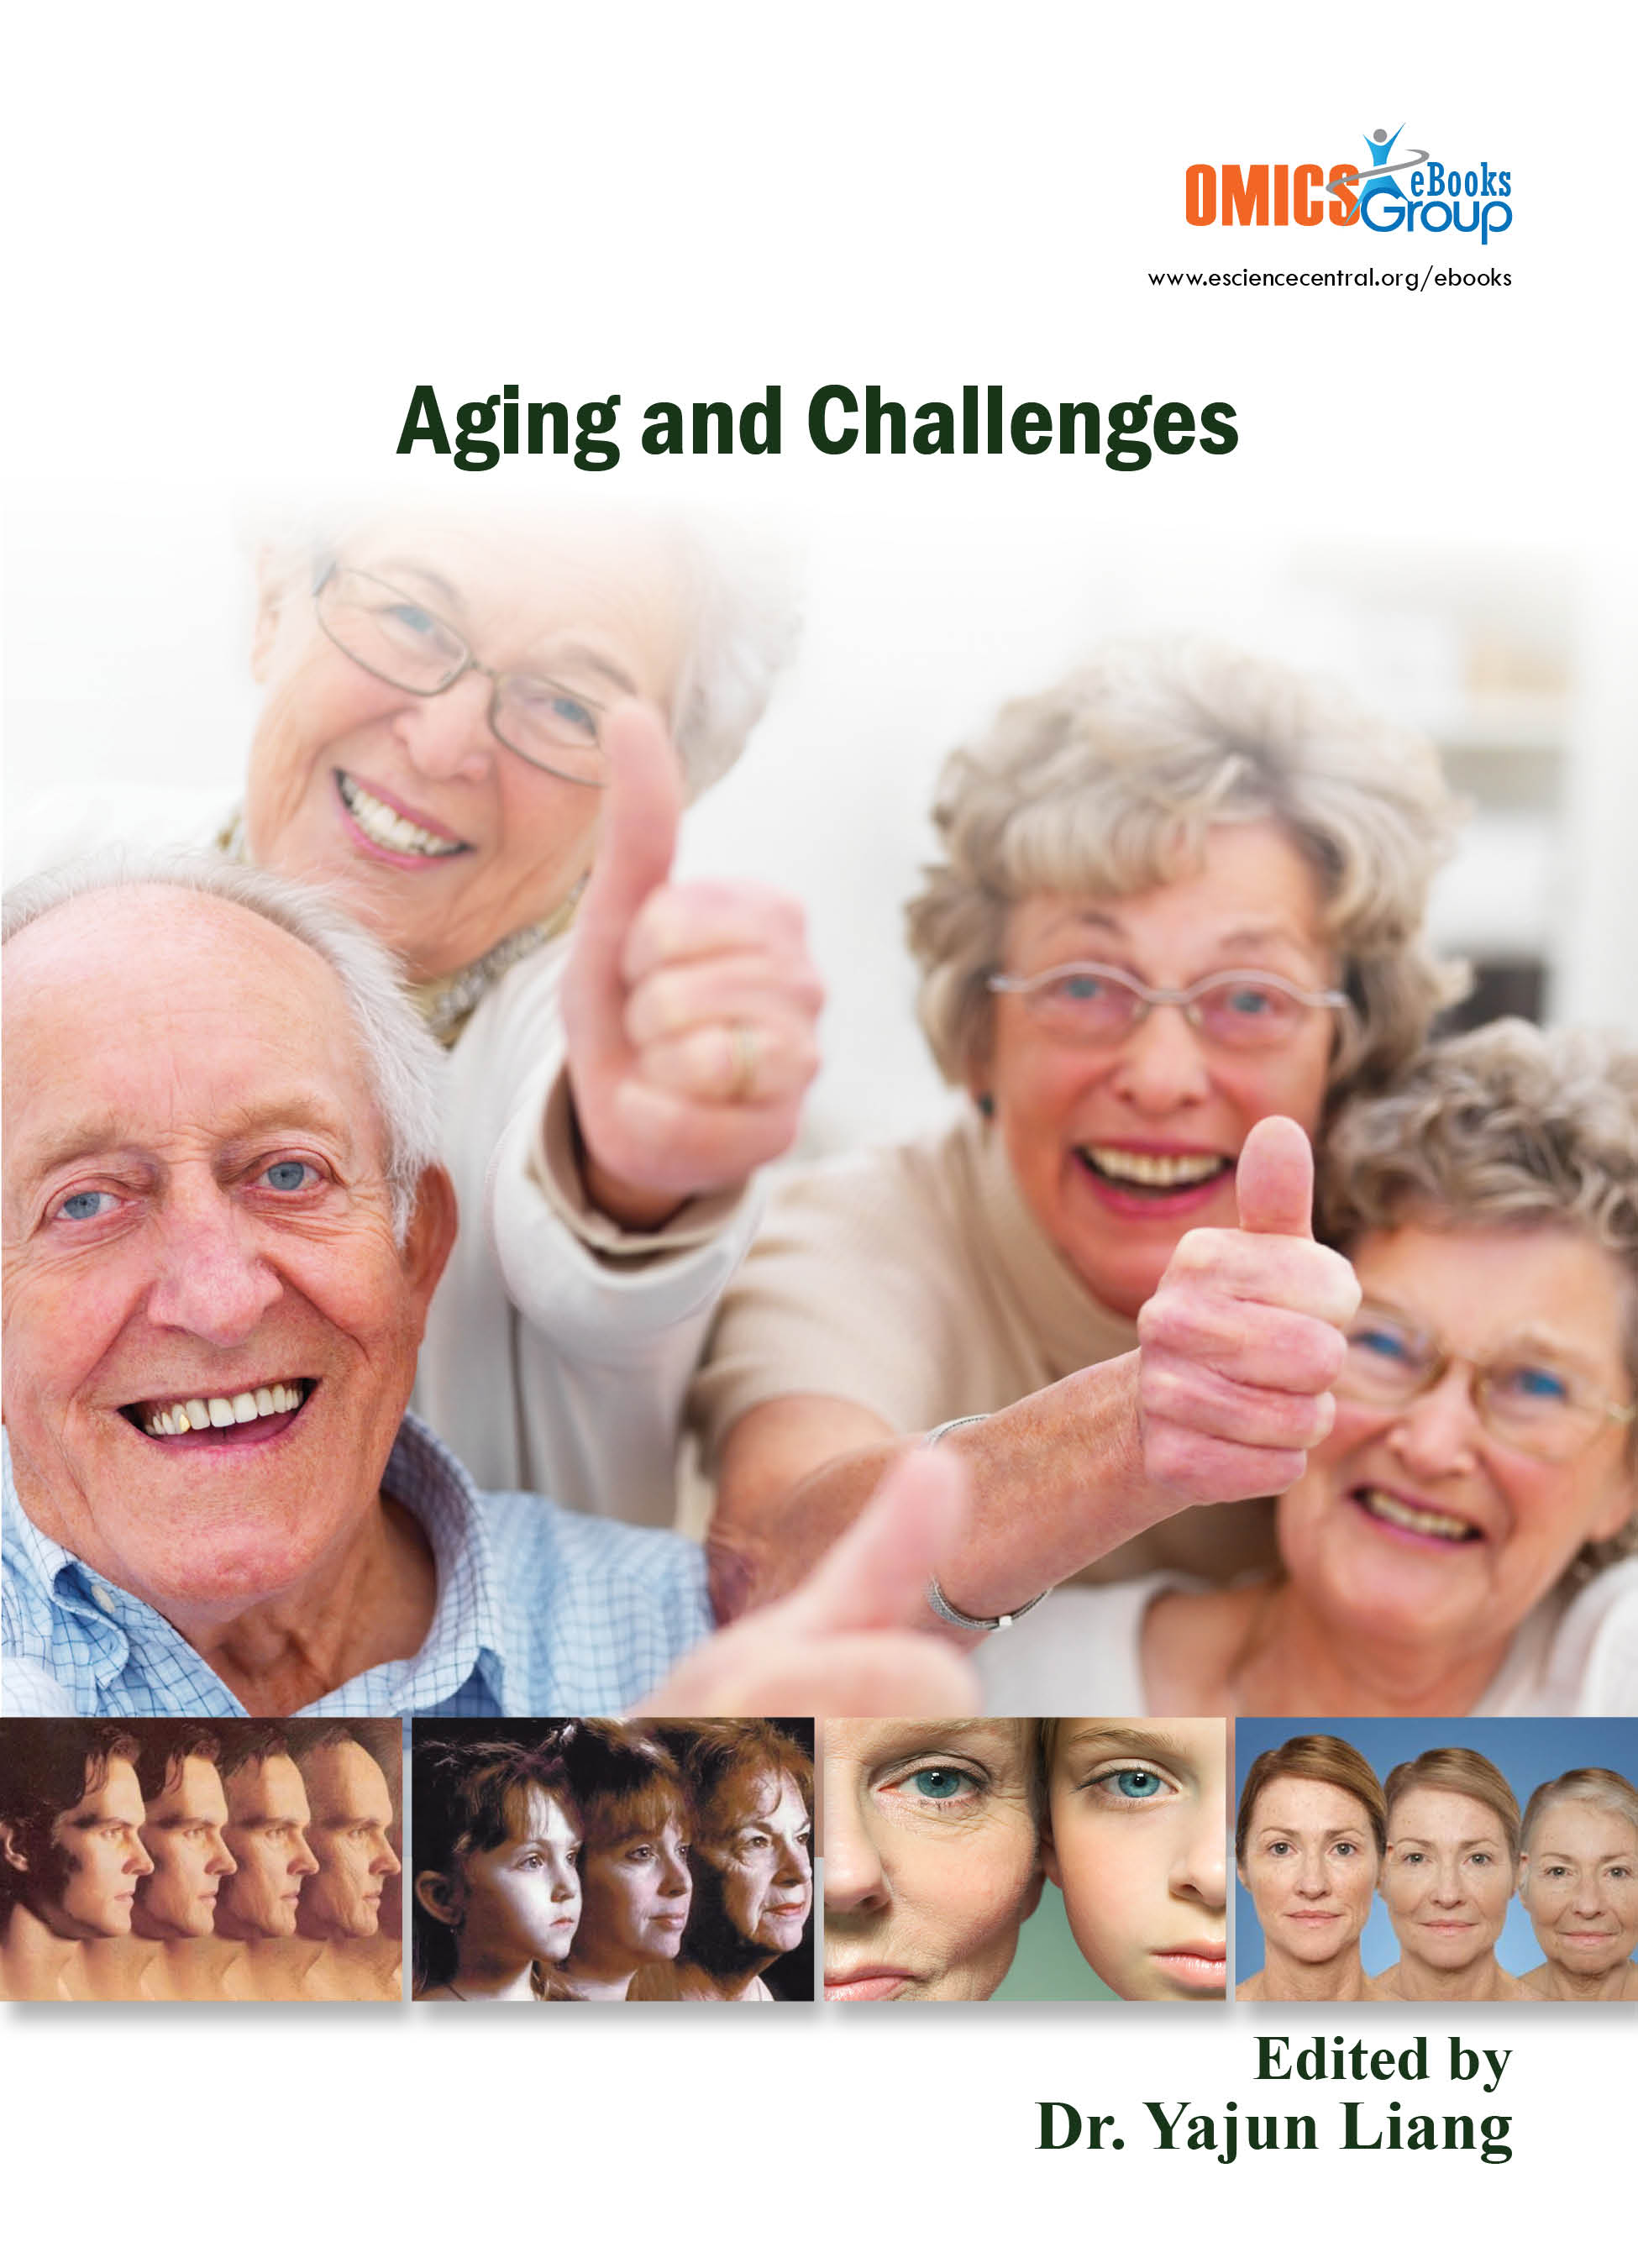 Aging and Challenges